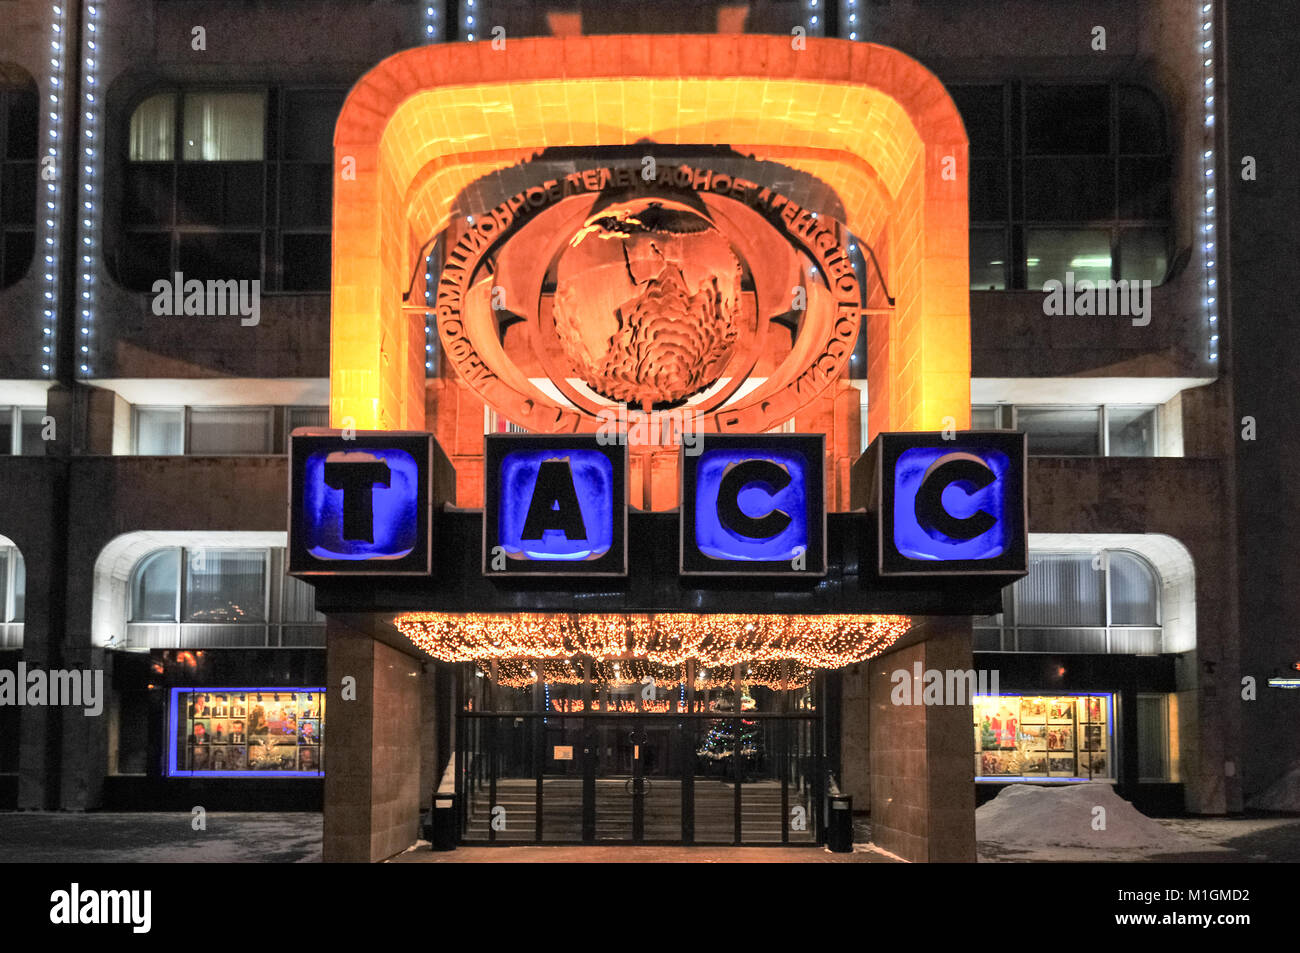 Sign to ITAR-TASS over the entrance to the building at night in Moscow, Russia. - Stock Image